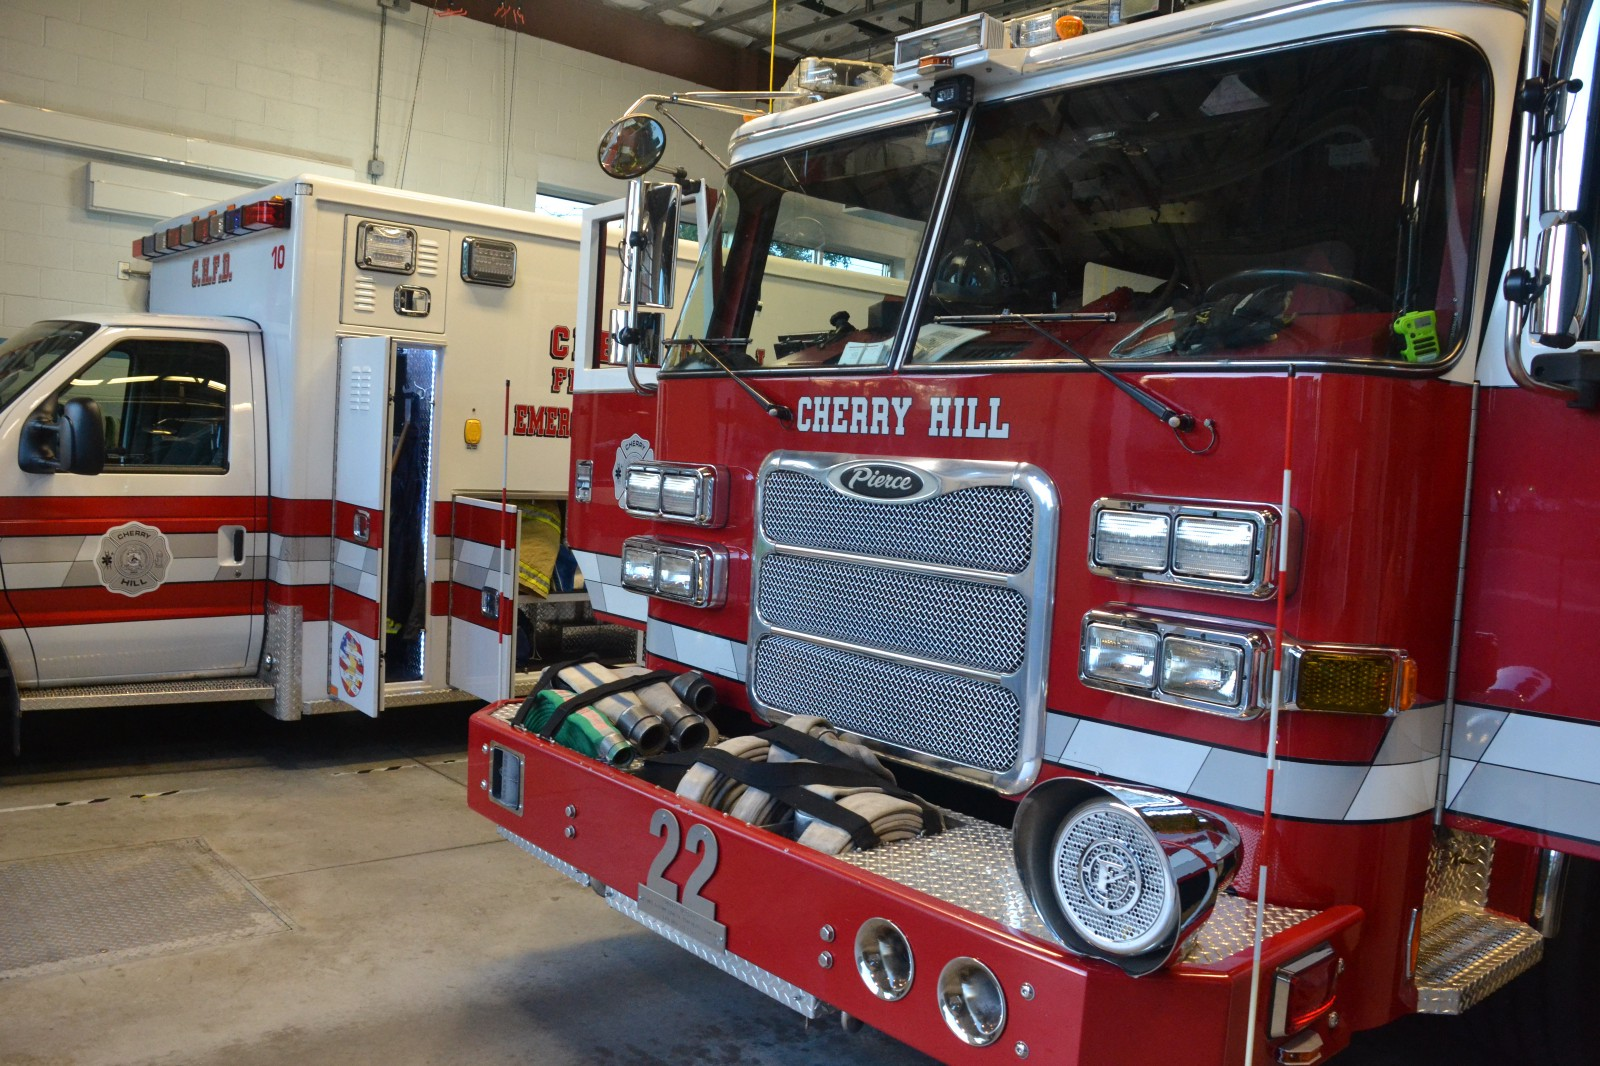 Cherry Hill Fire Department Hosting Child Seat Safety Check Event On Friday